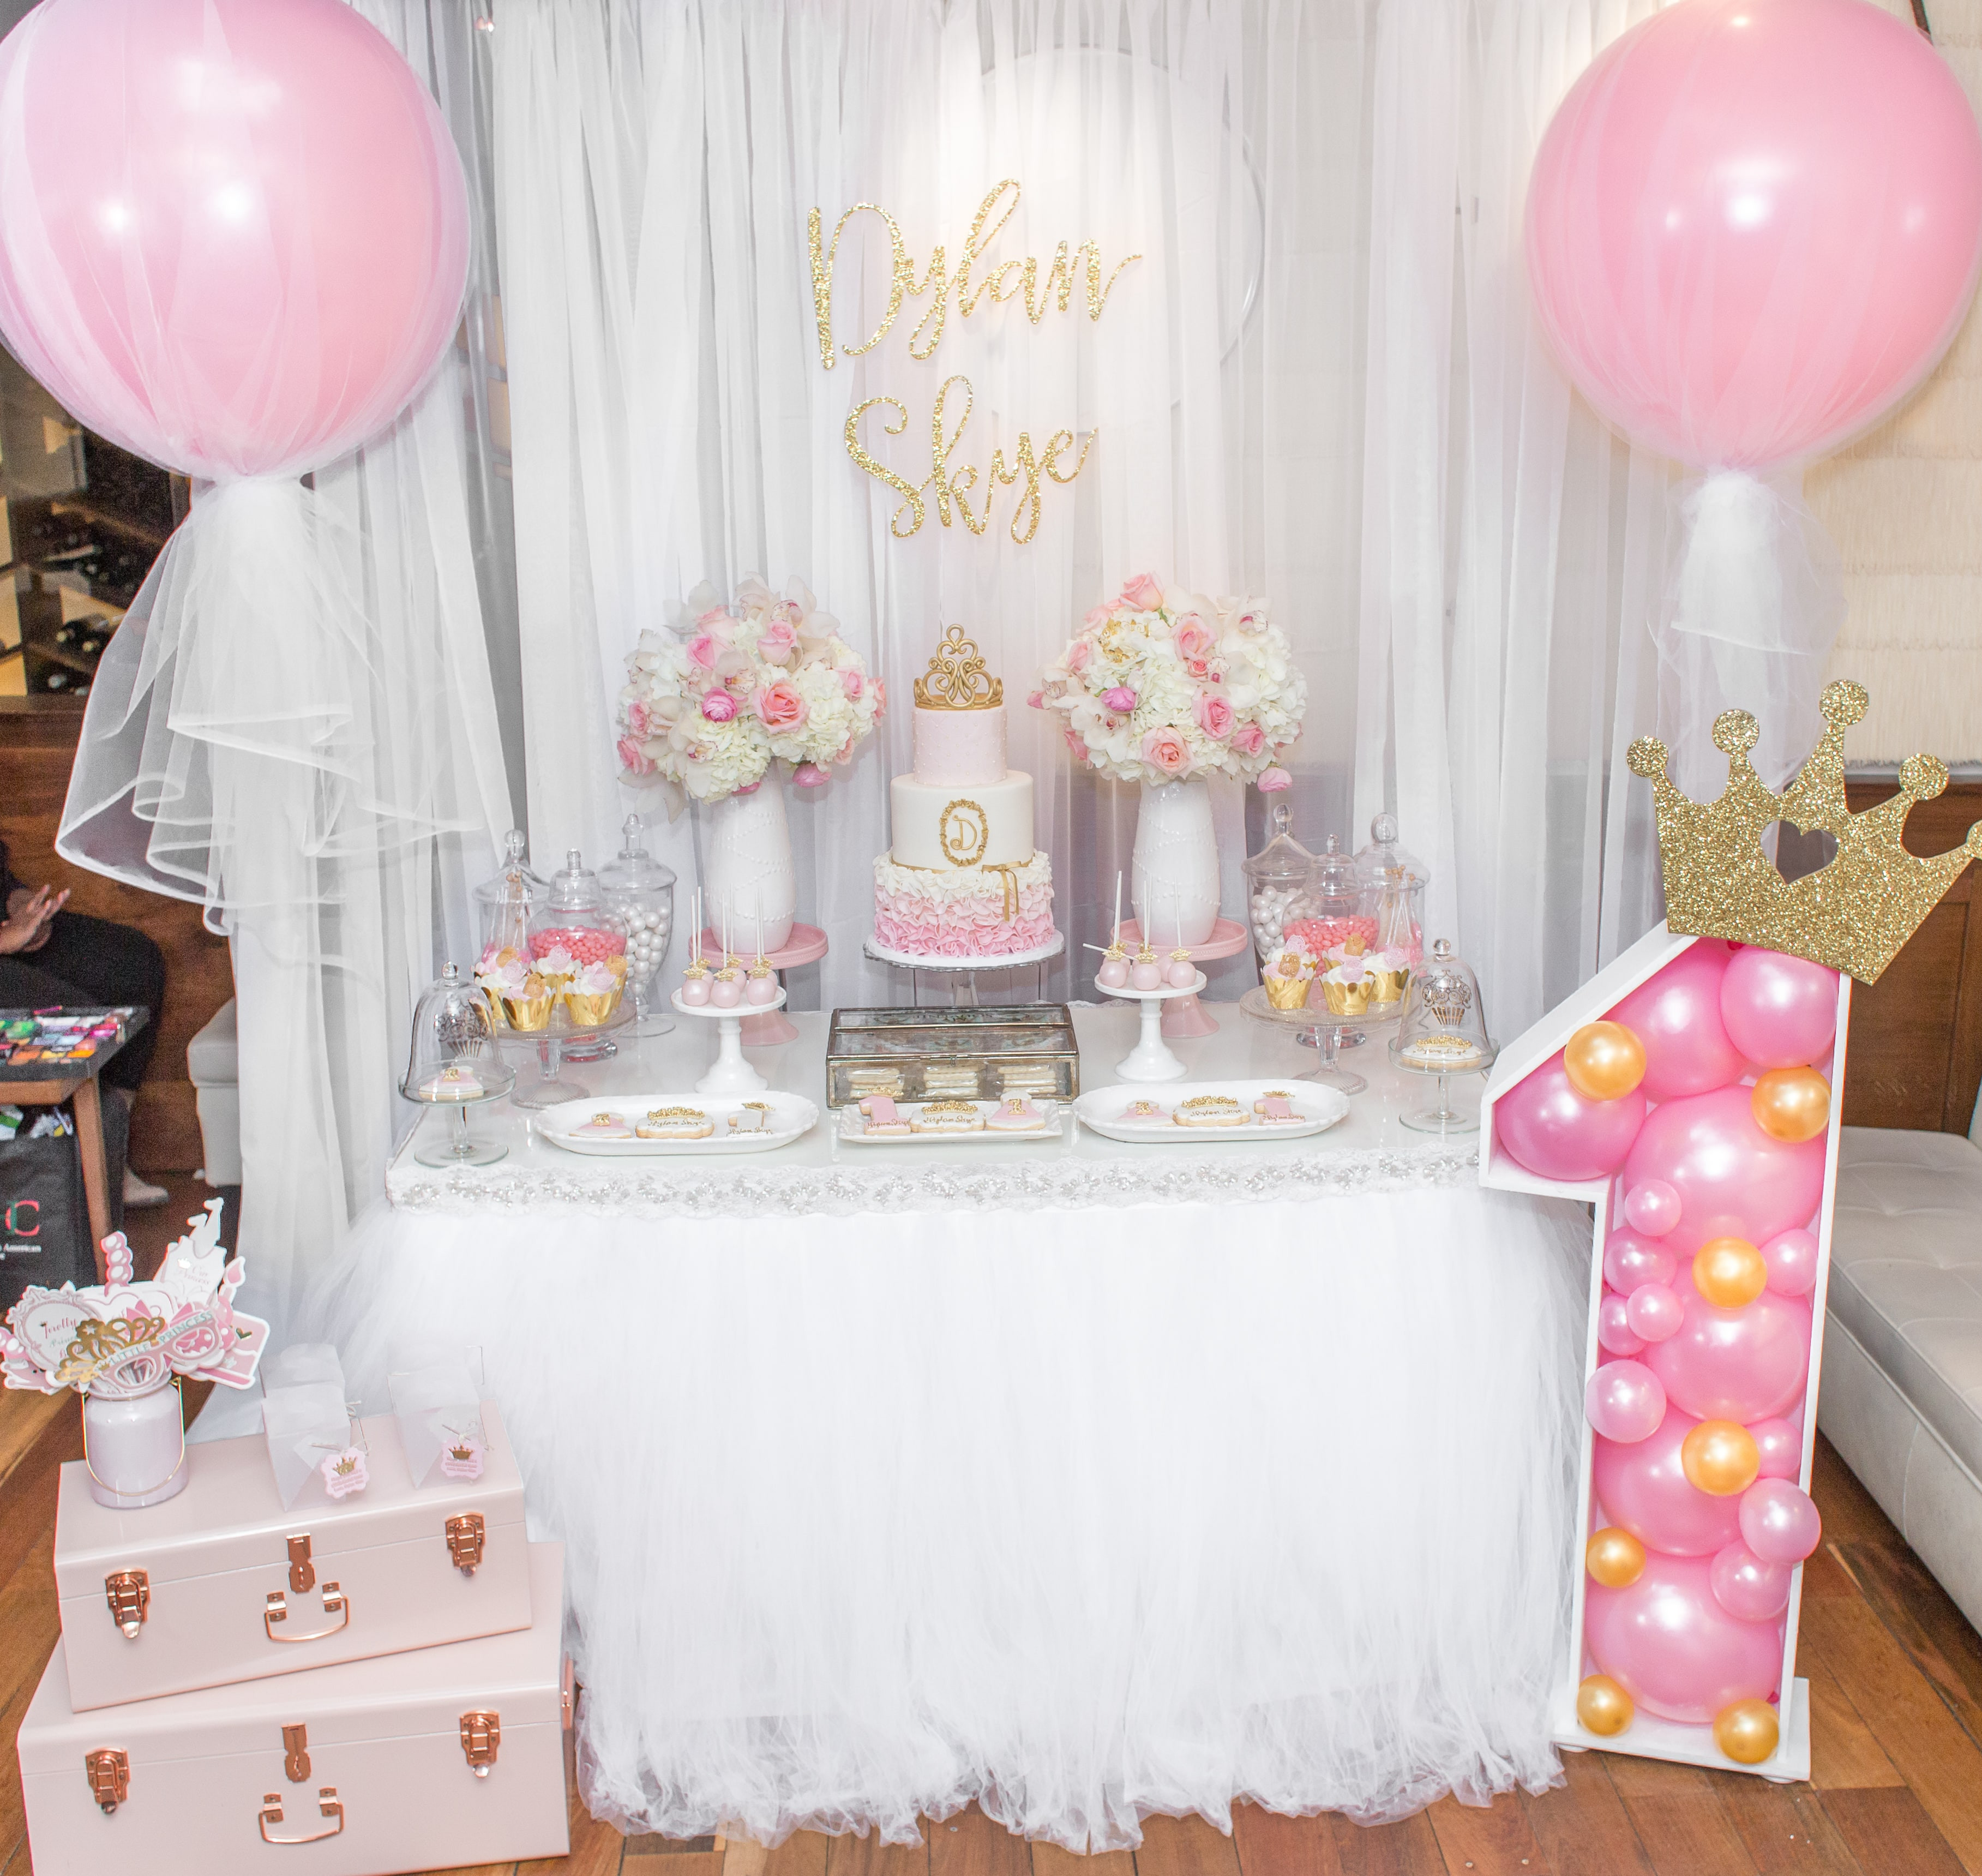 Best ideas about 1st Birthday Party . Save or Pin Princess First Birthday Party Now.